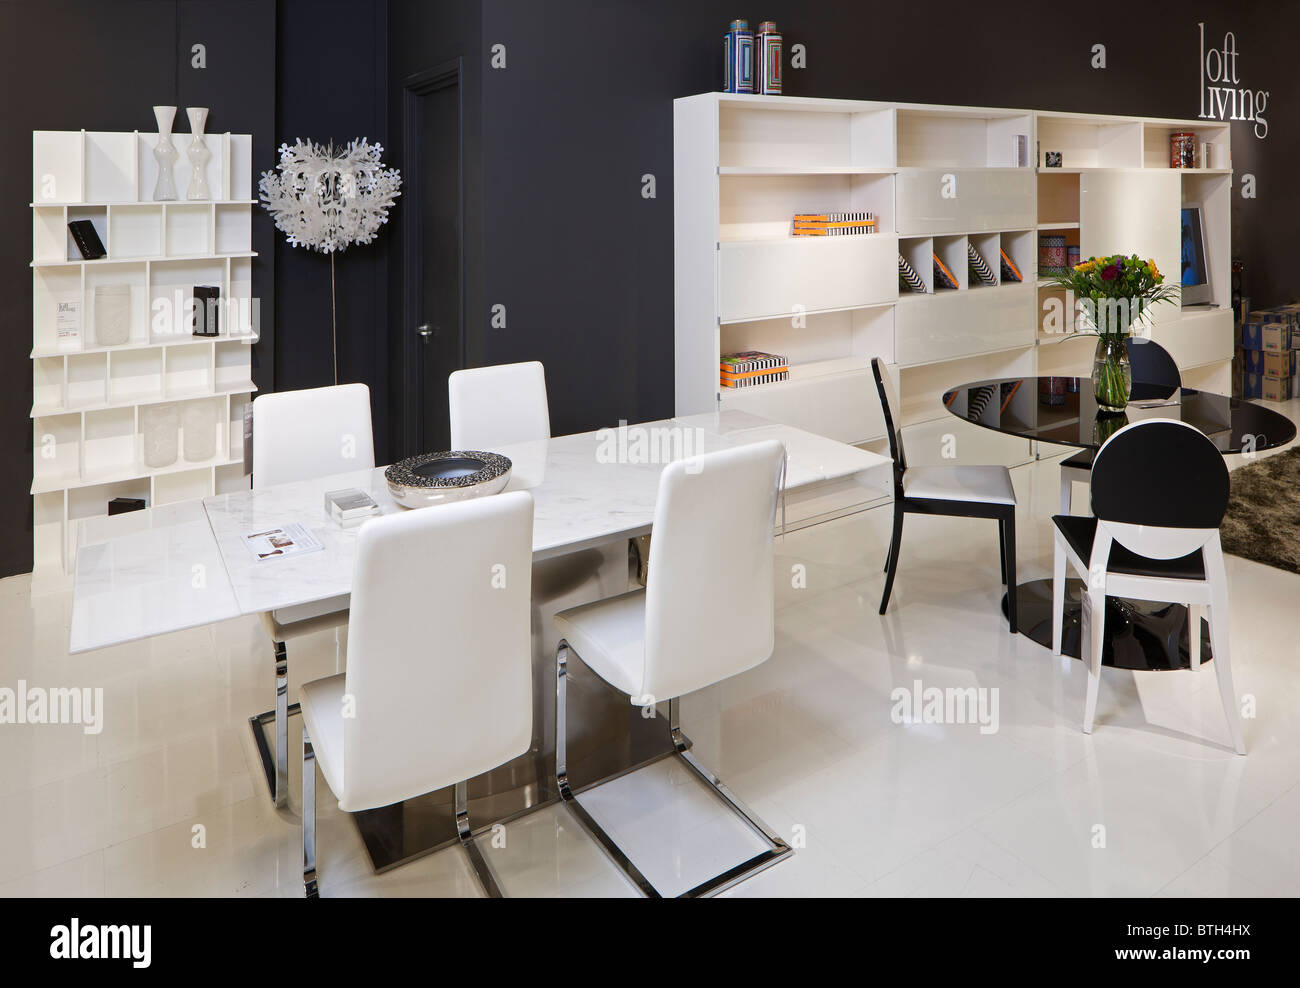 bo concept furniture store stock photo royalty free image. Black Bedroom Furniture Sets. Home Design Ideas